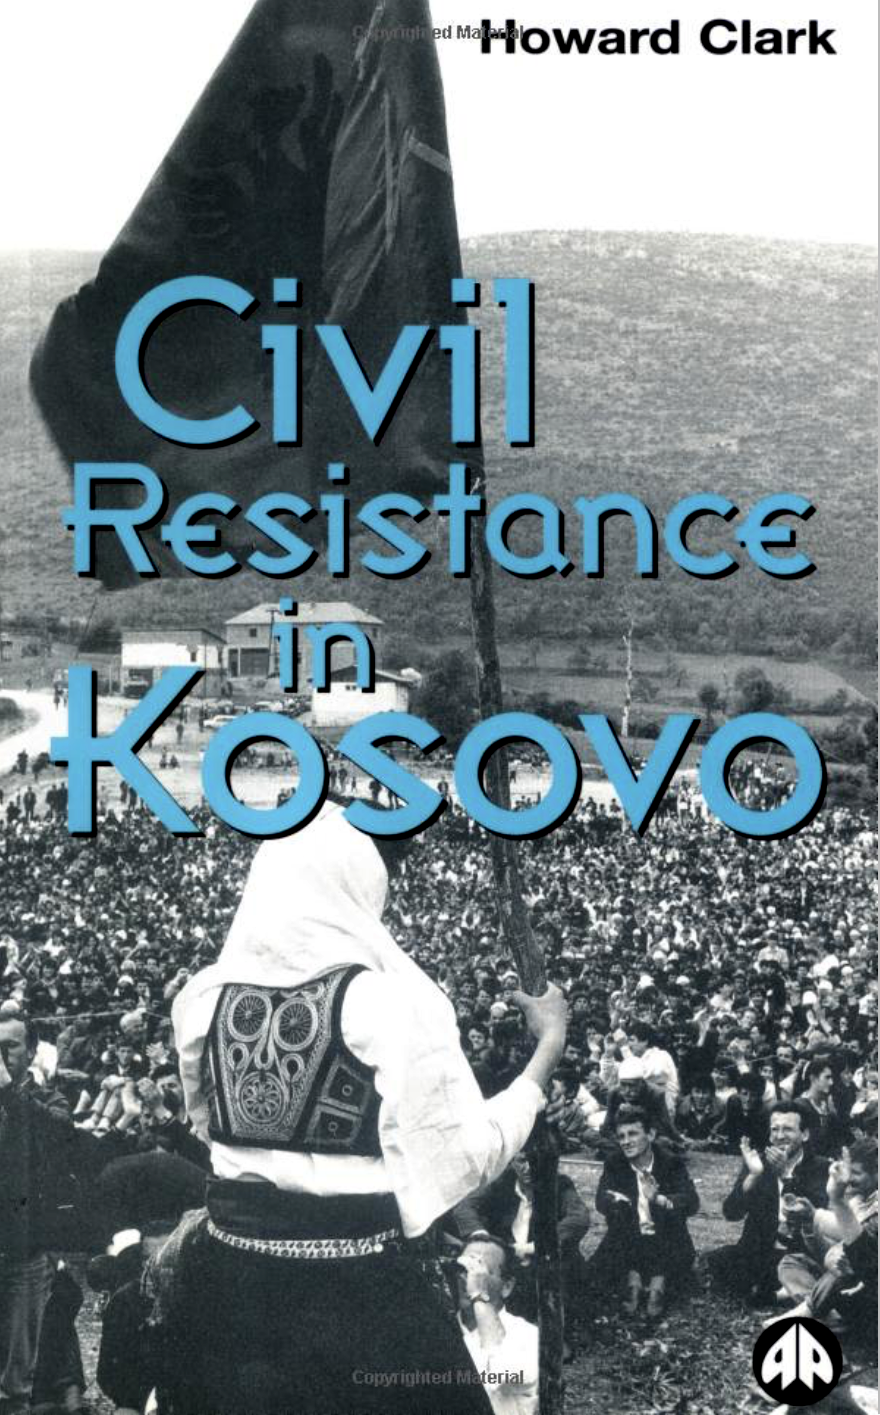 Civil resistance in Kosovo by Howard Clark - Published by Pluto Press